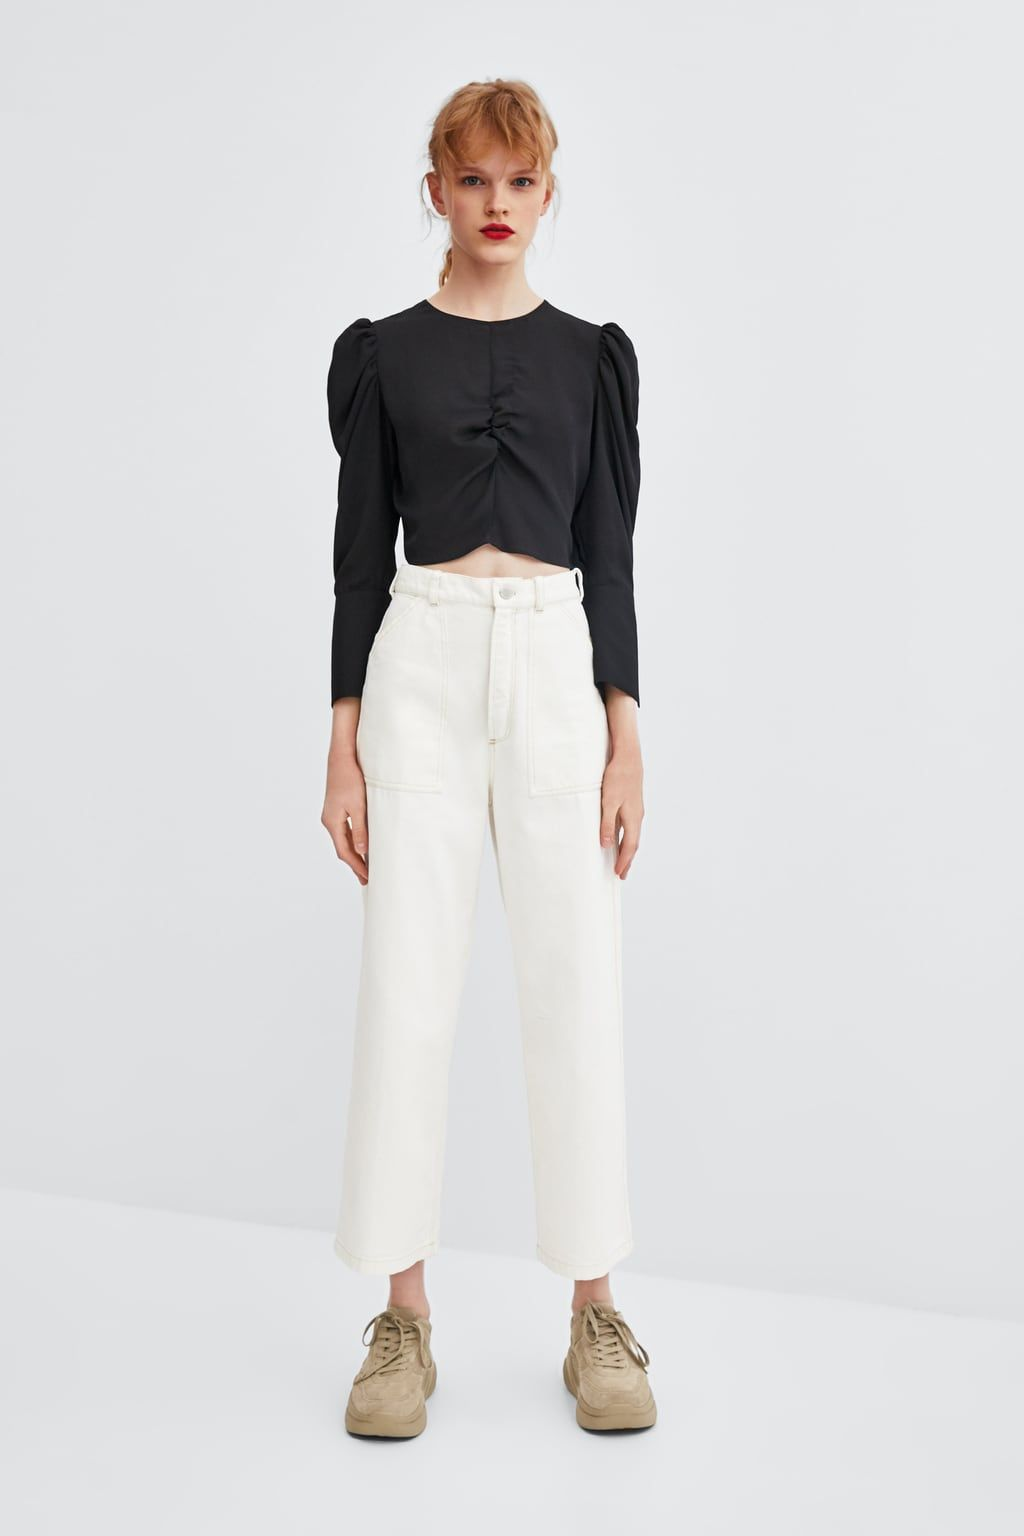 ccbd0e4af9 Image 1 of FLOWY PLEATED TOP from Zara